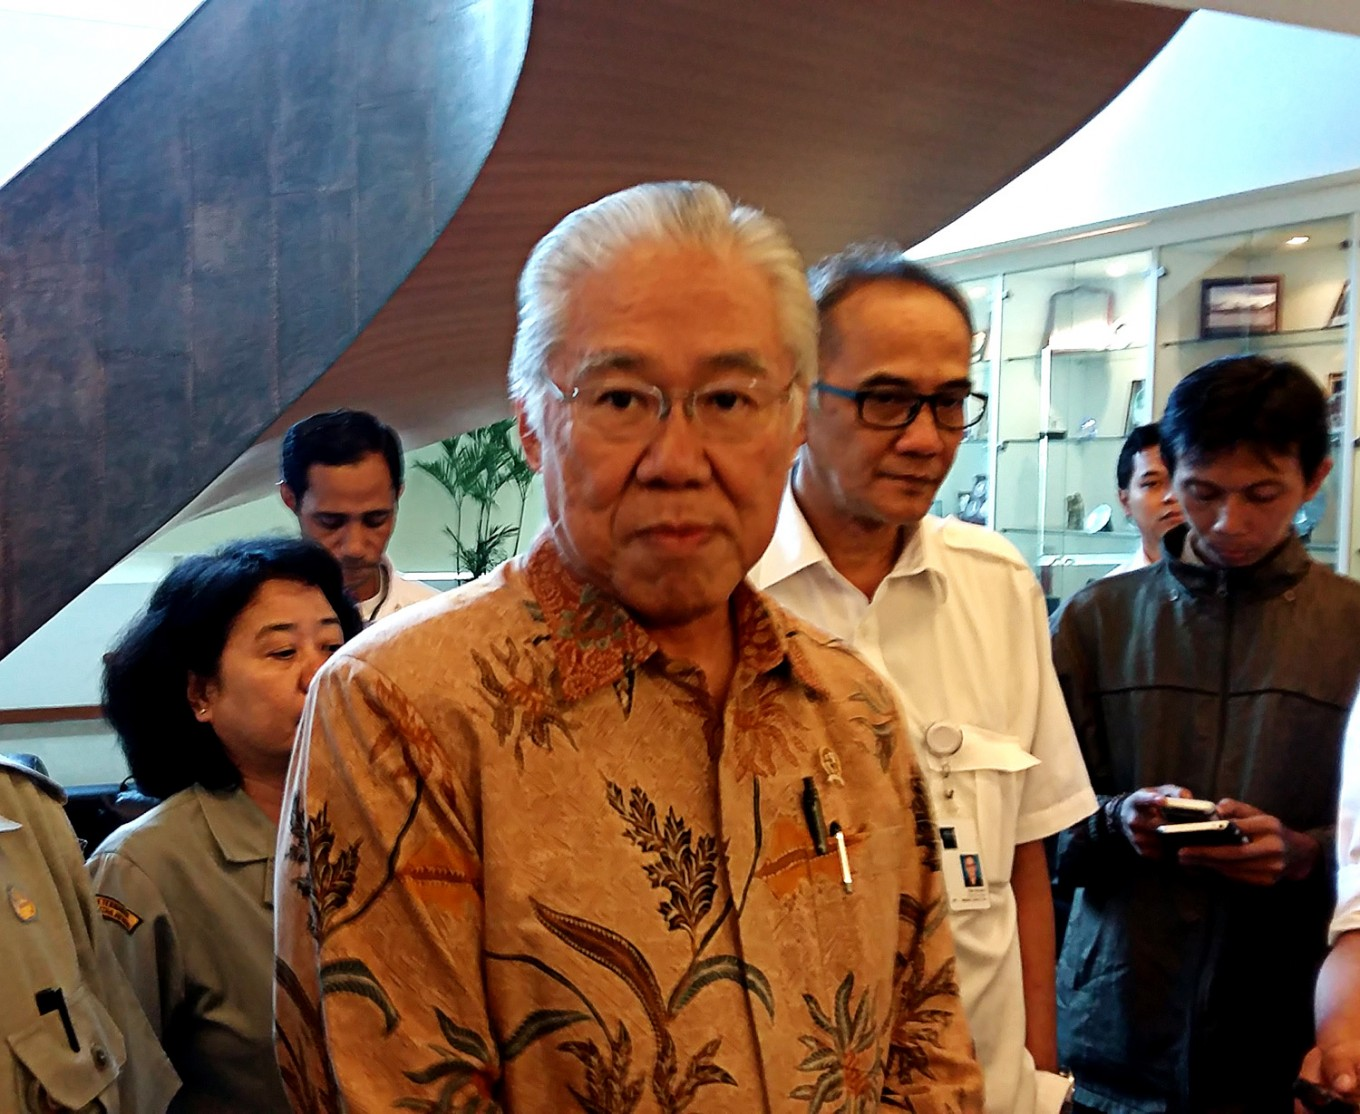 Australia to invest in Indonesian cattle breeders, minister says